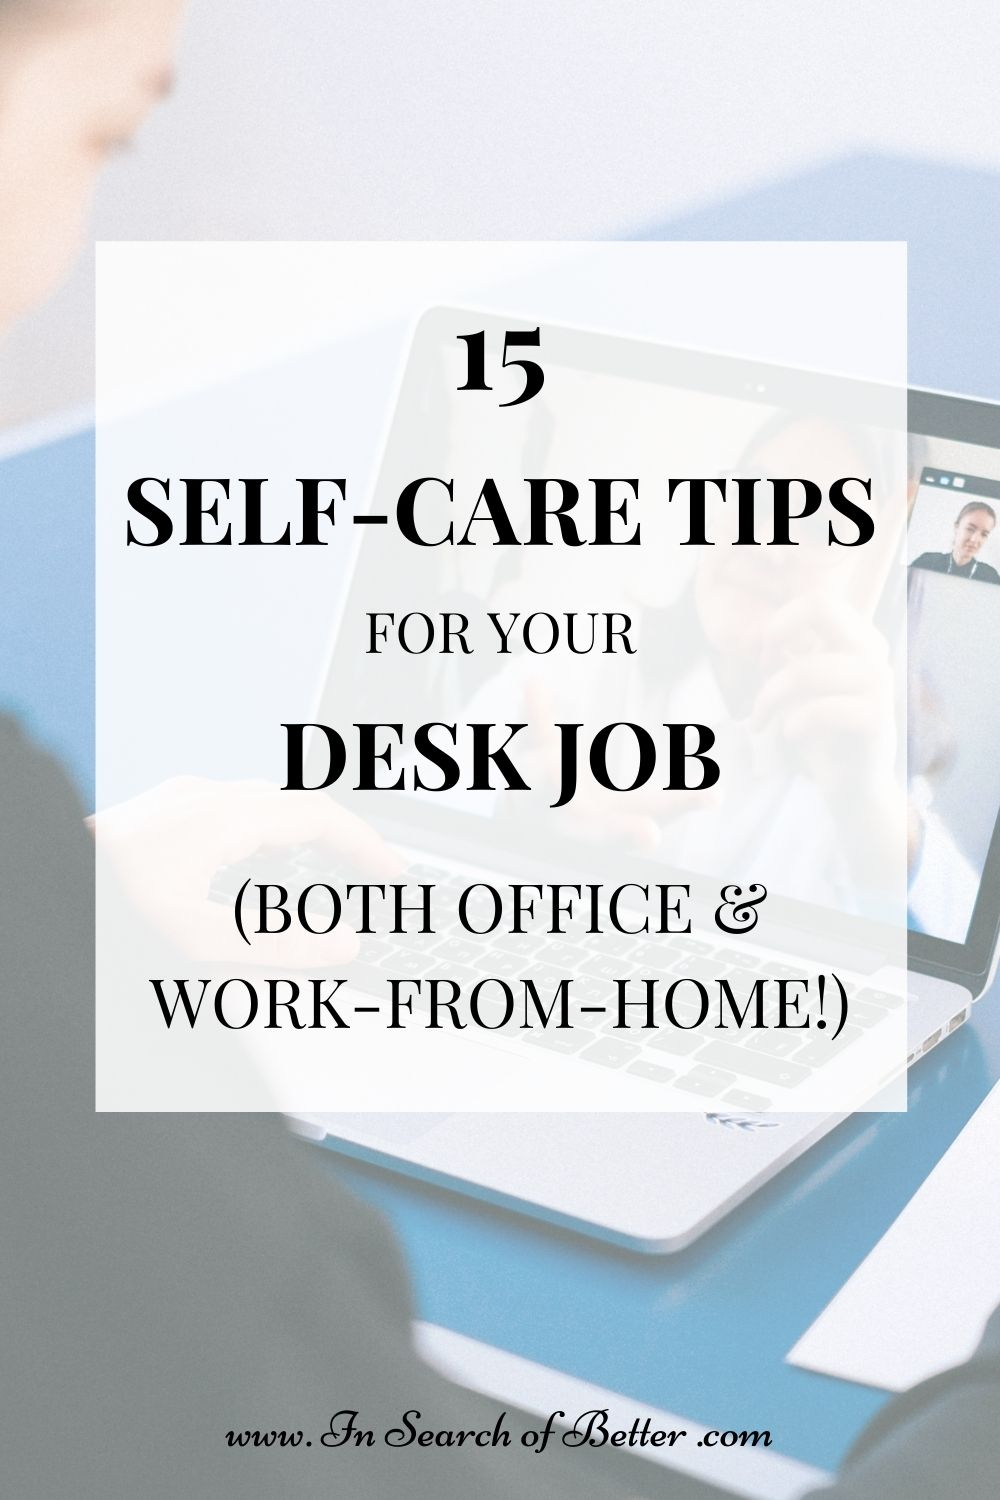 15 self-care tips for your desk job (both office & work-from-home!)